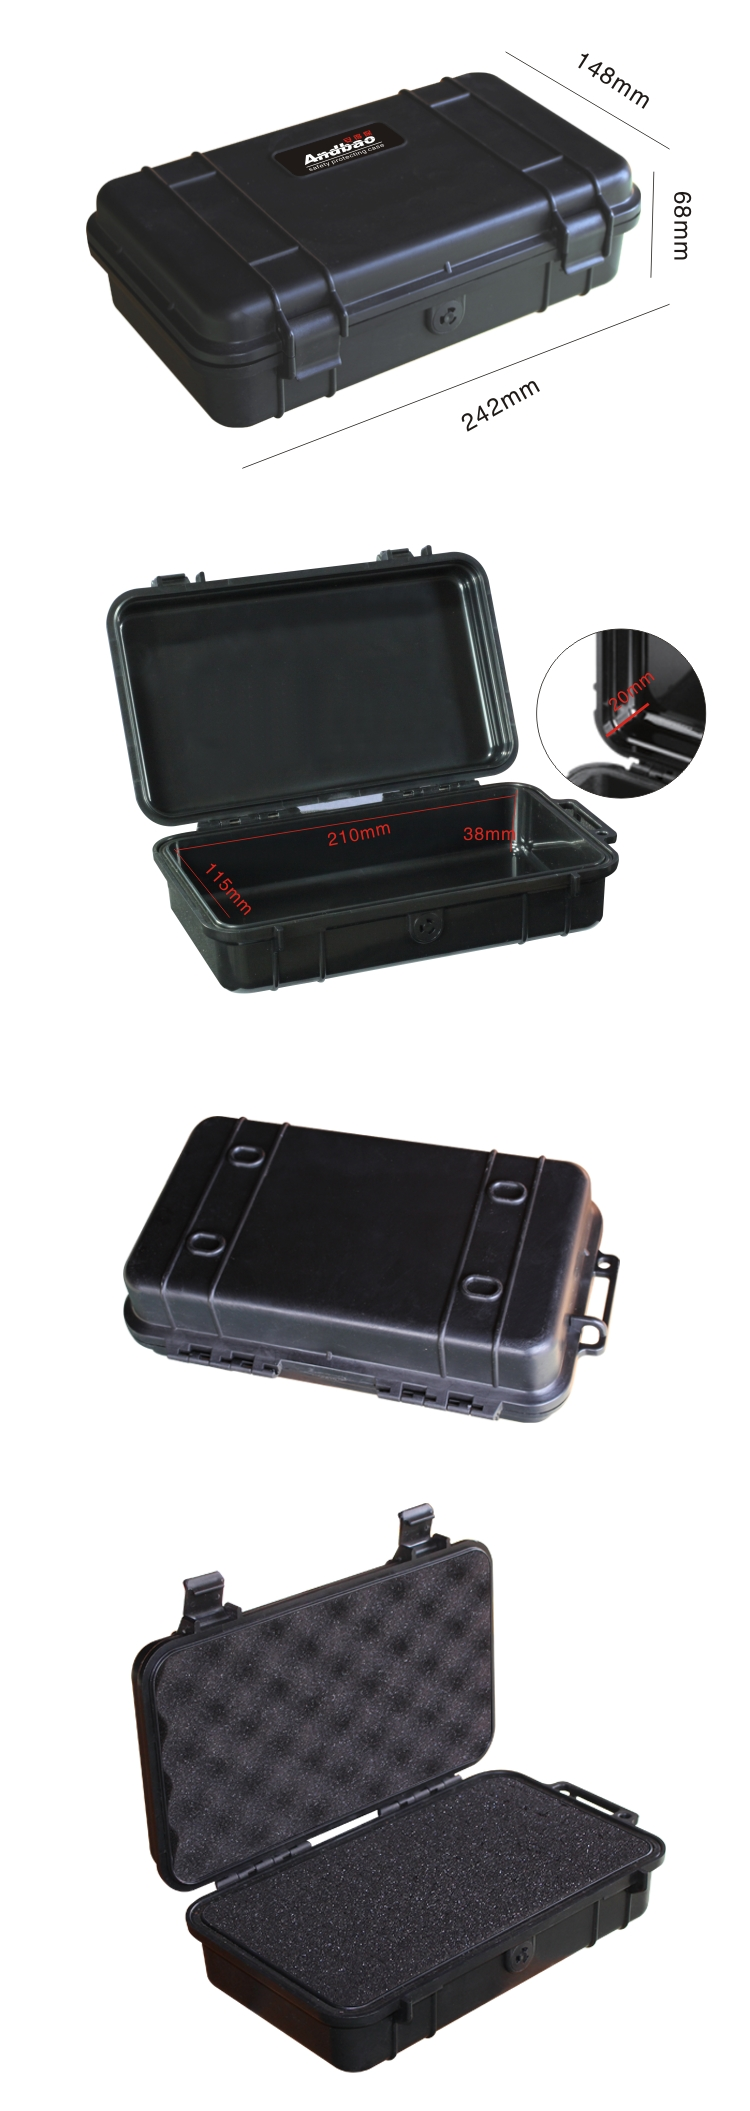 Plastic waterproof equipment carrying cases